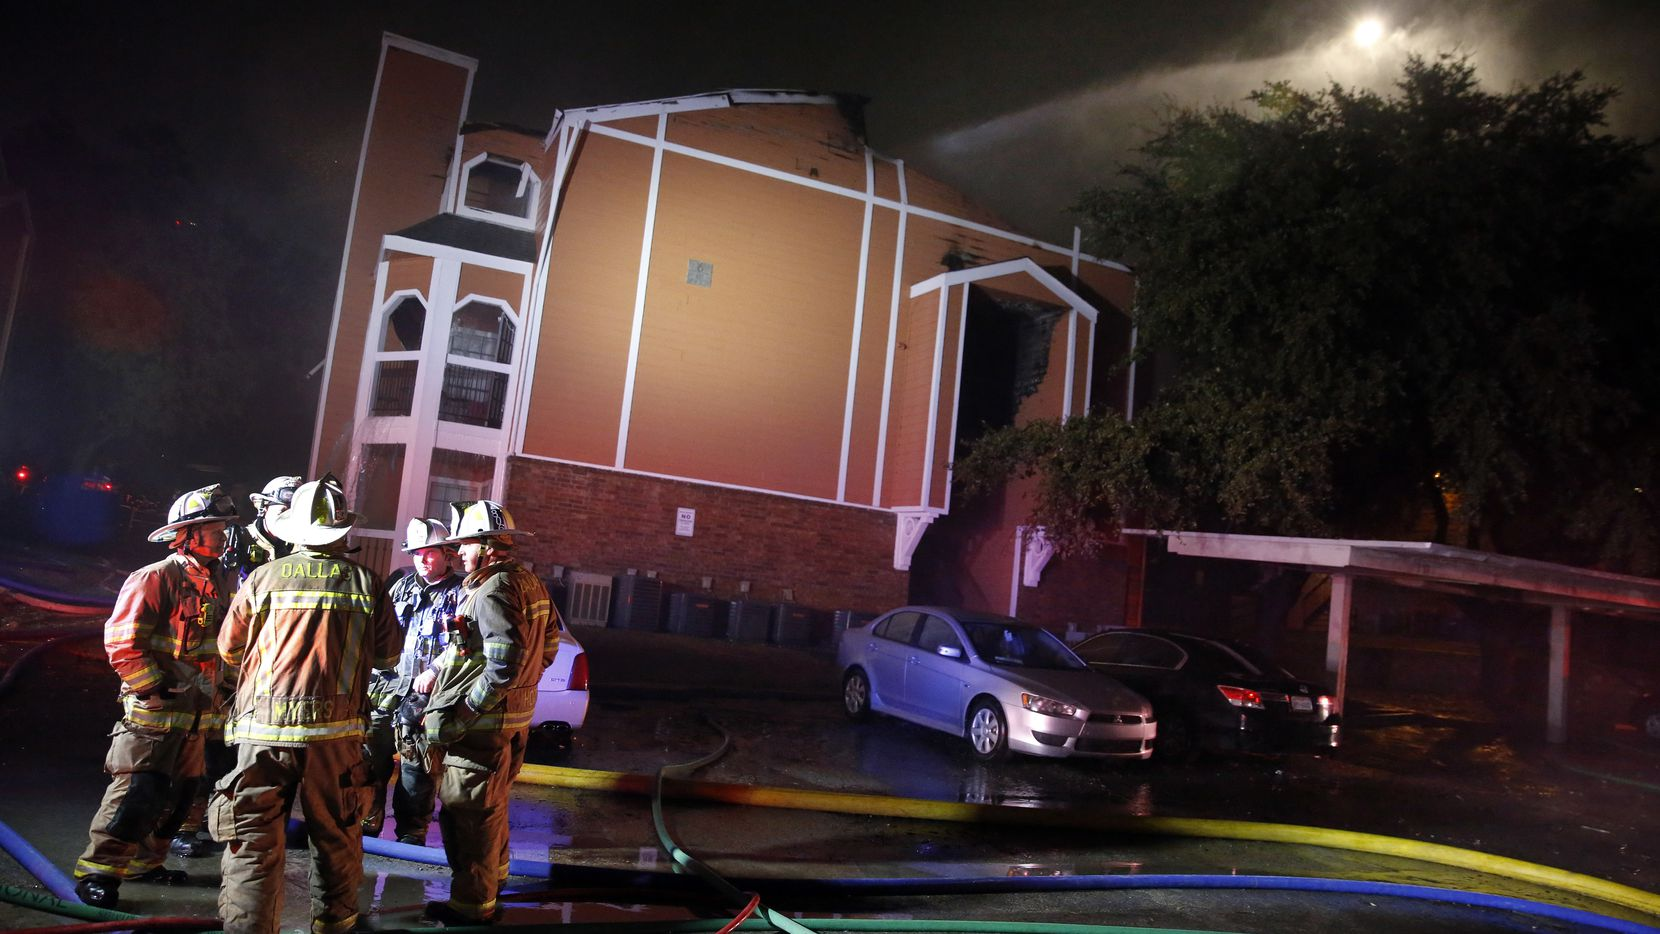 Dallas Fire Rescue responded to a three-alarm fire at the Solaris Apartments on Forest Lane in Far Northeast Dallas, Thursday evening, November 28, 2019.